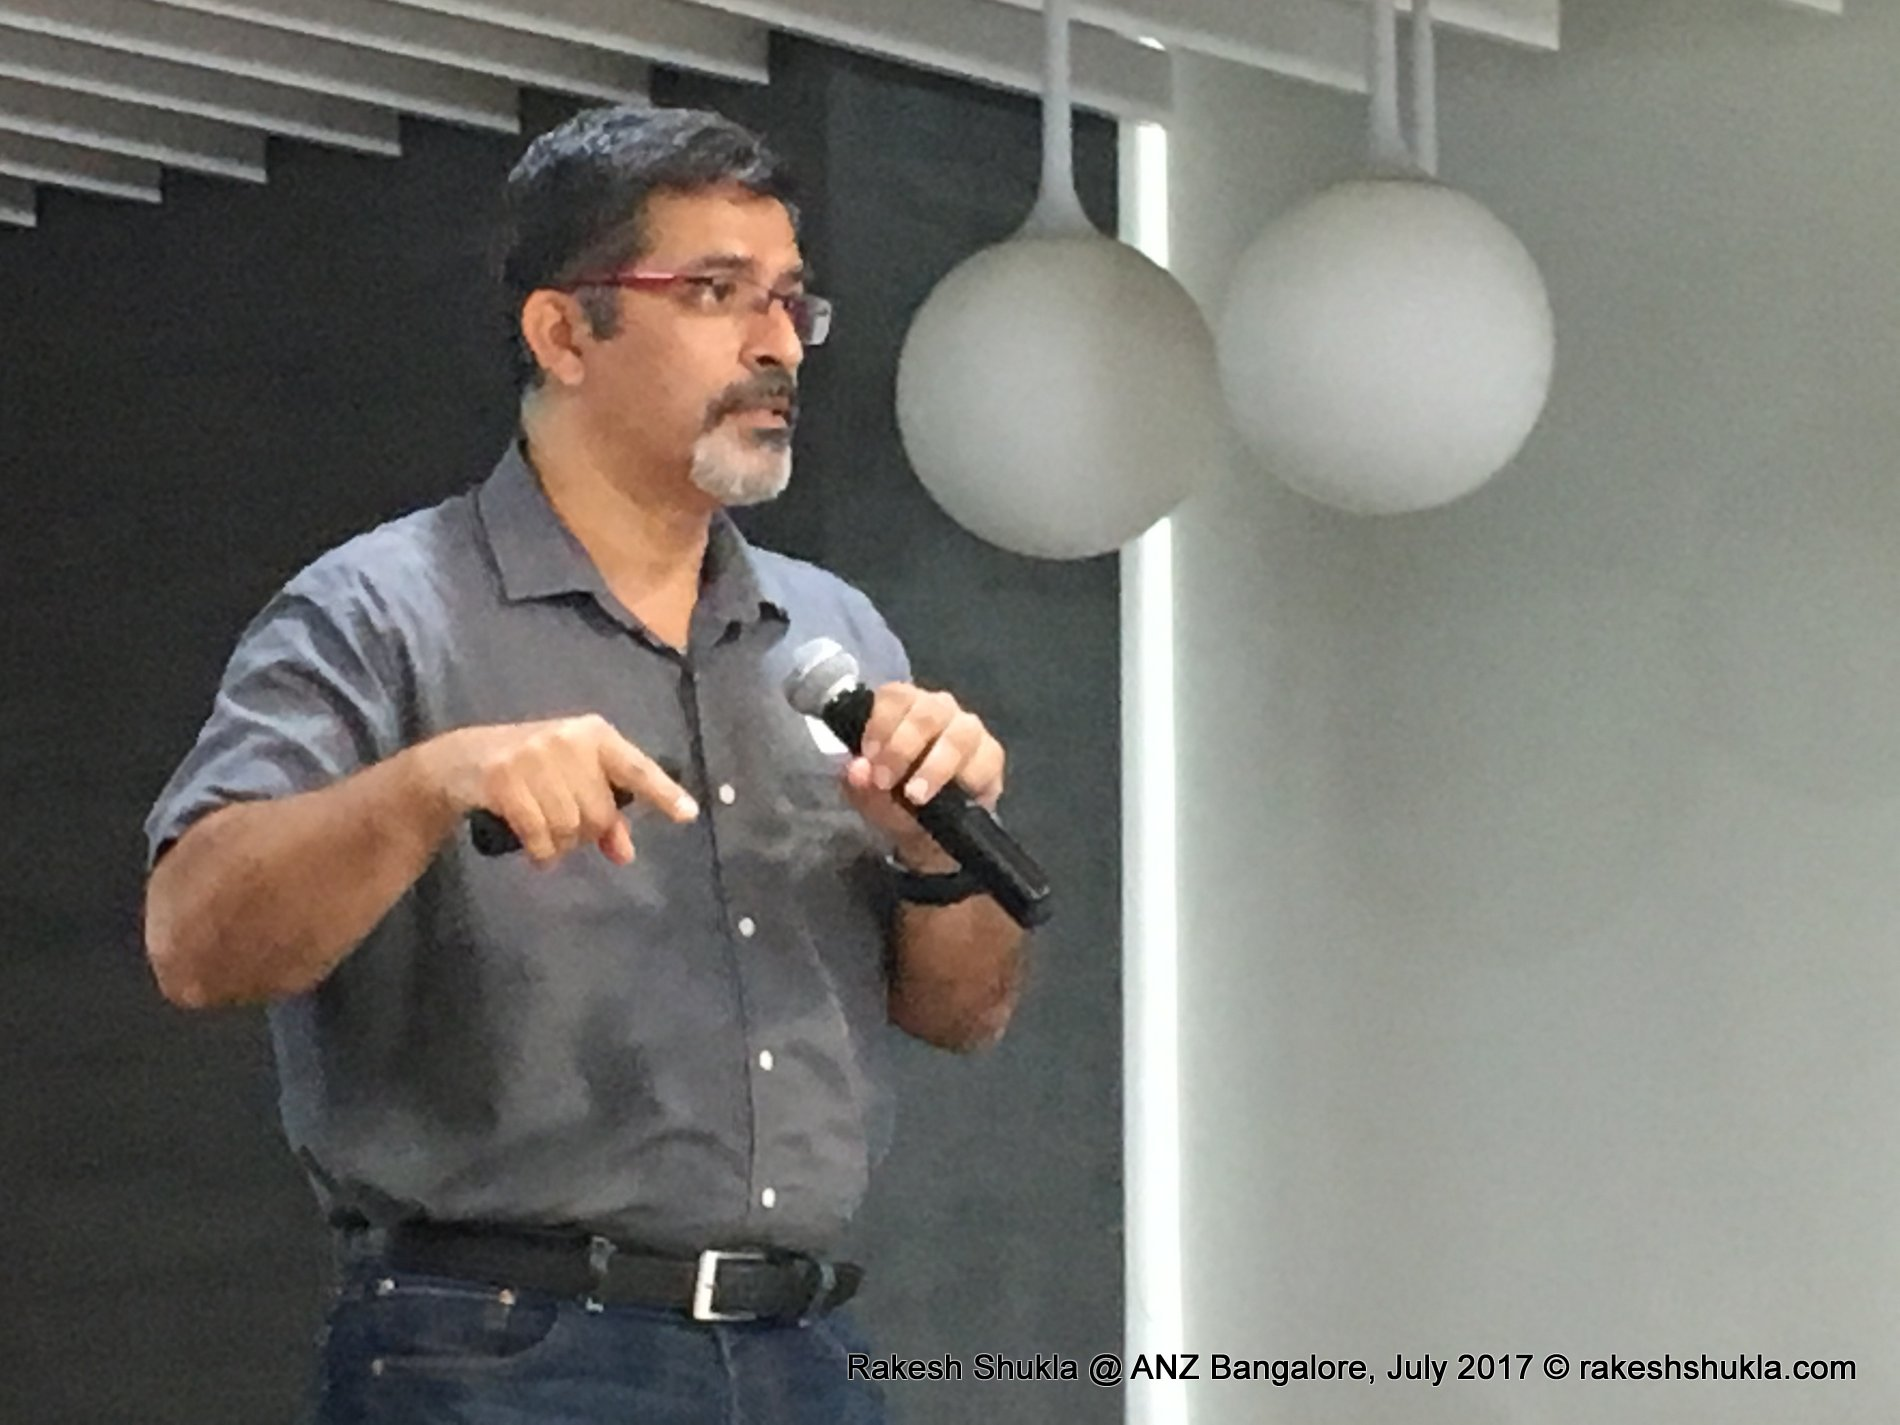 To change, first you need to find yourself: The ANZ Bangalore talk on July 4 I www.rakeshshukla.com